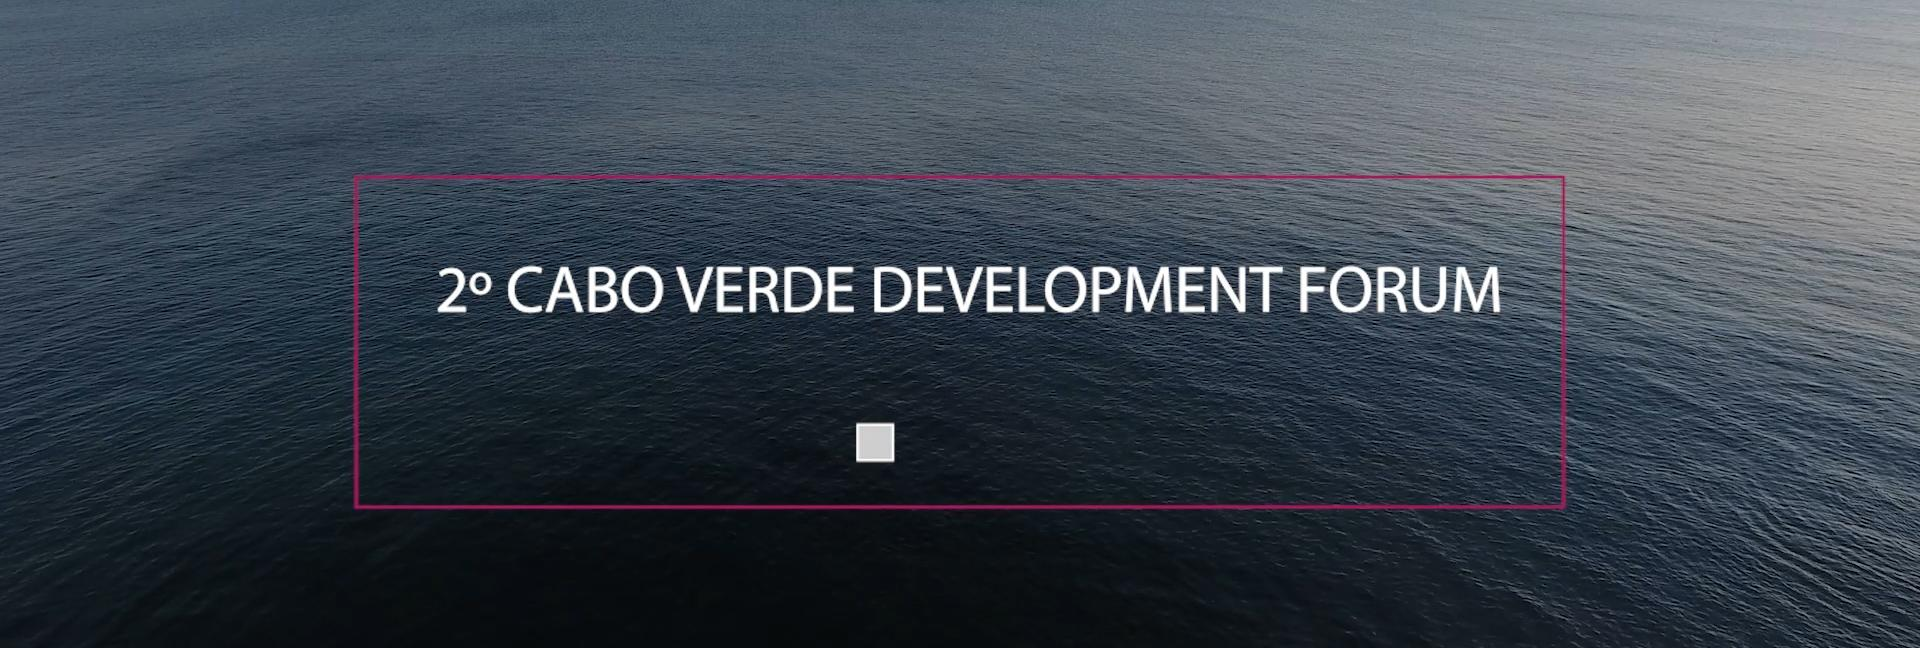 2º Cabo Verde Development Forum